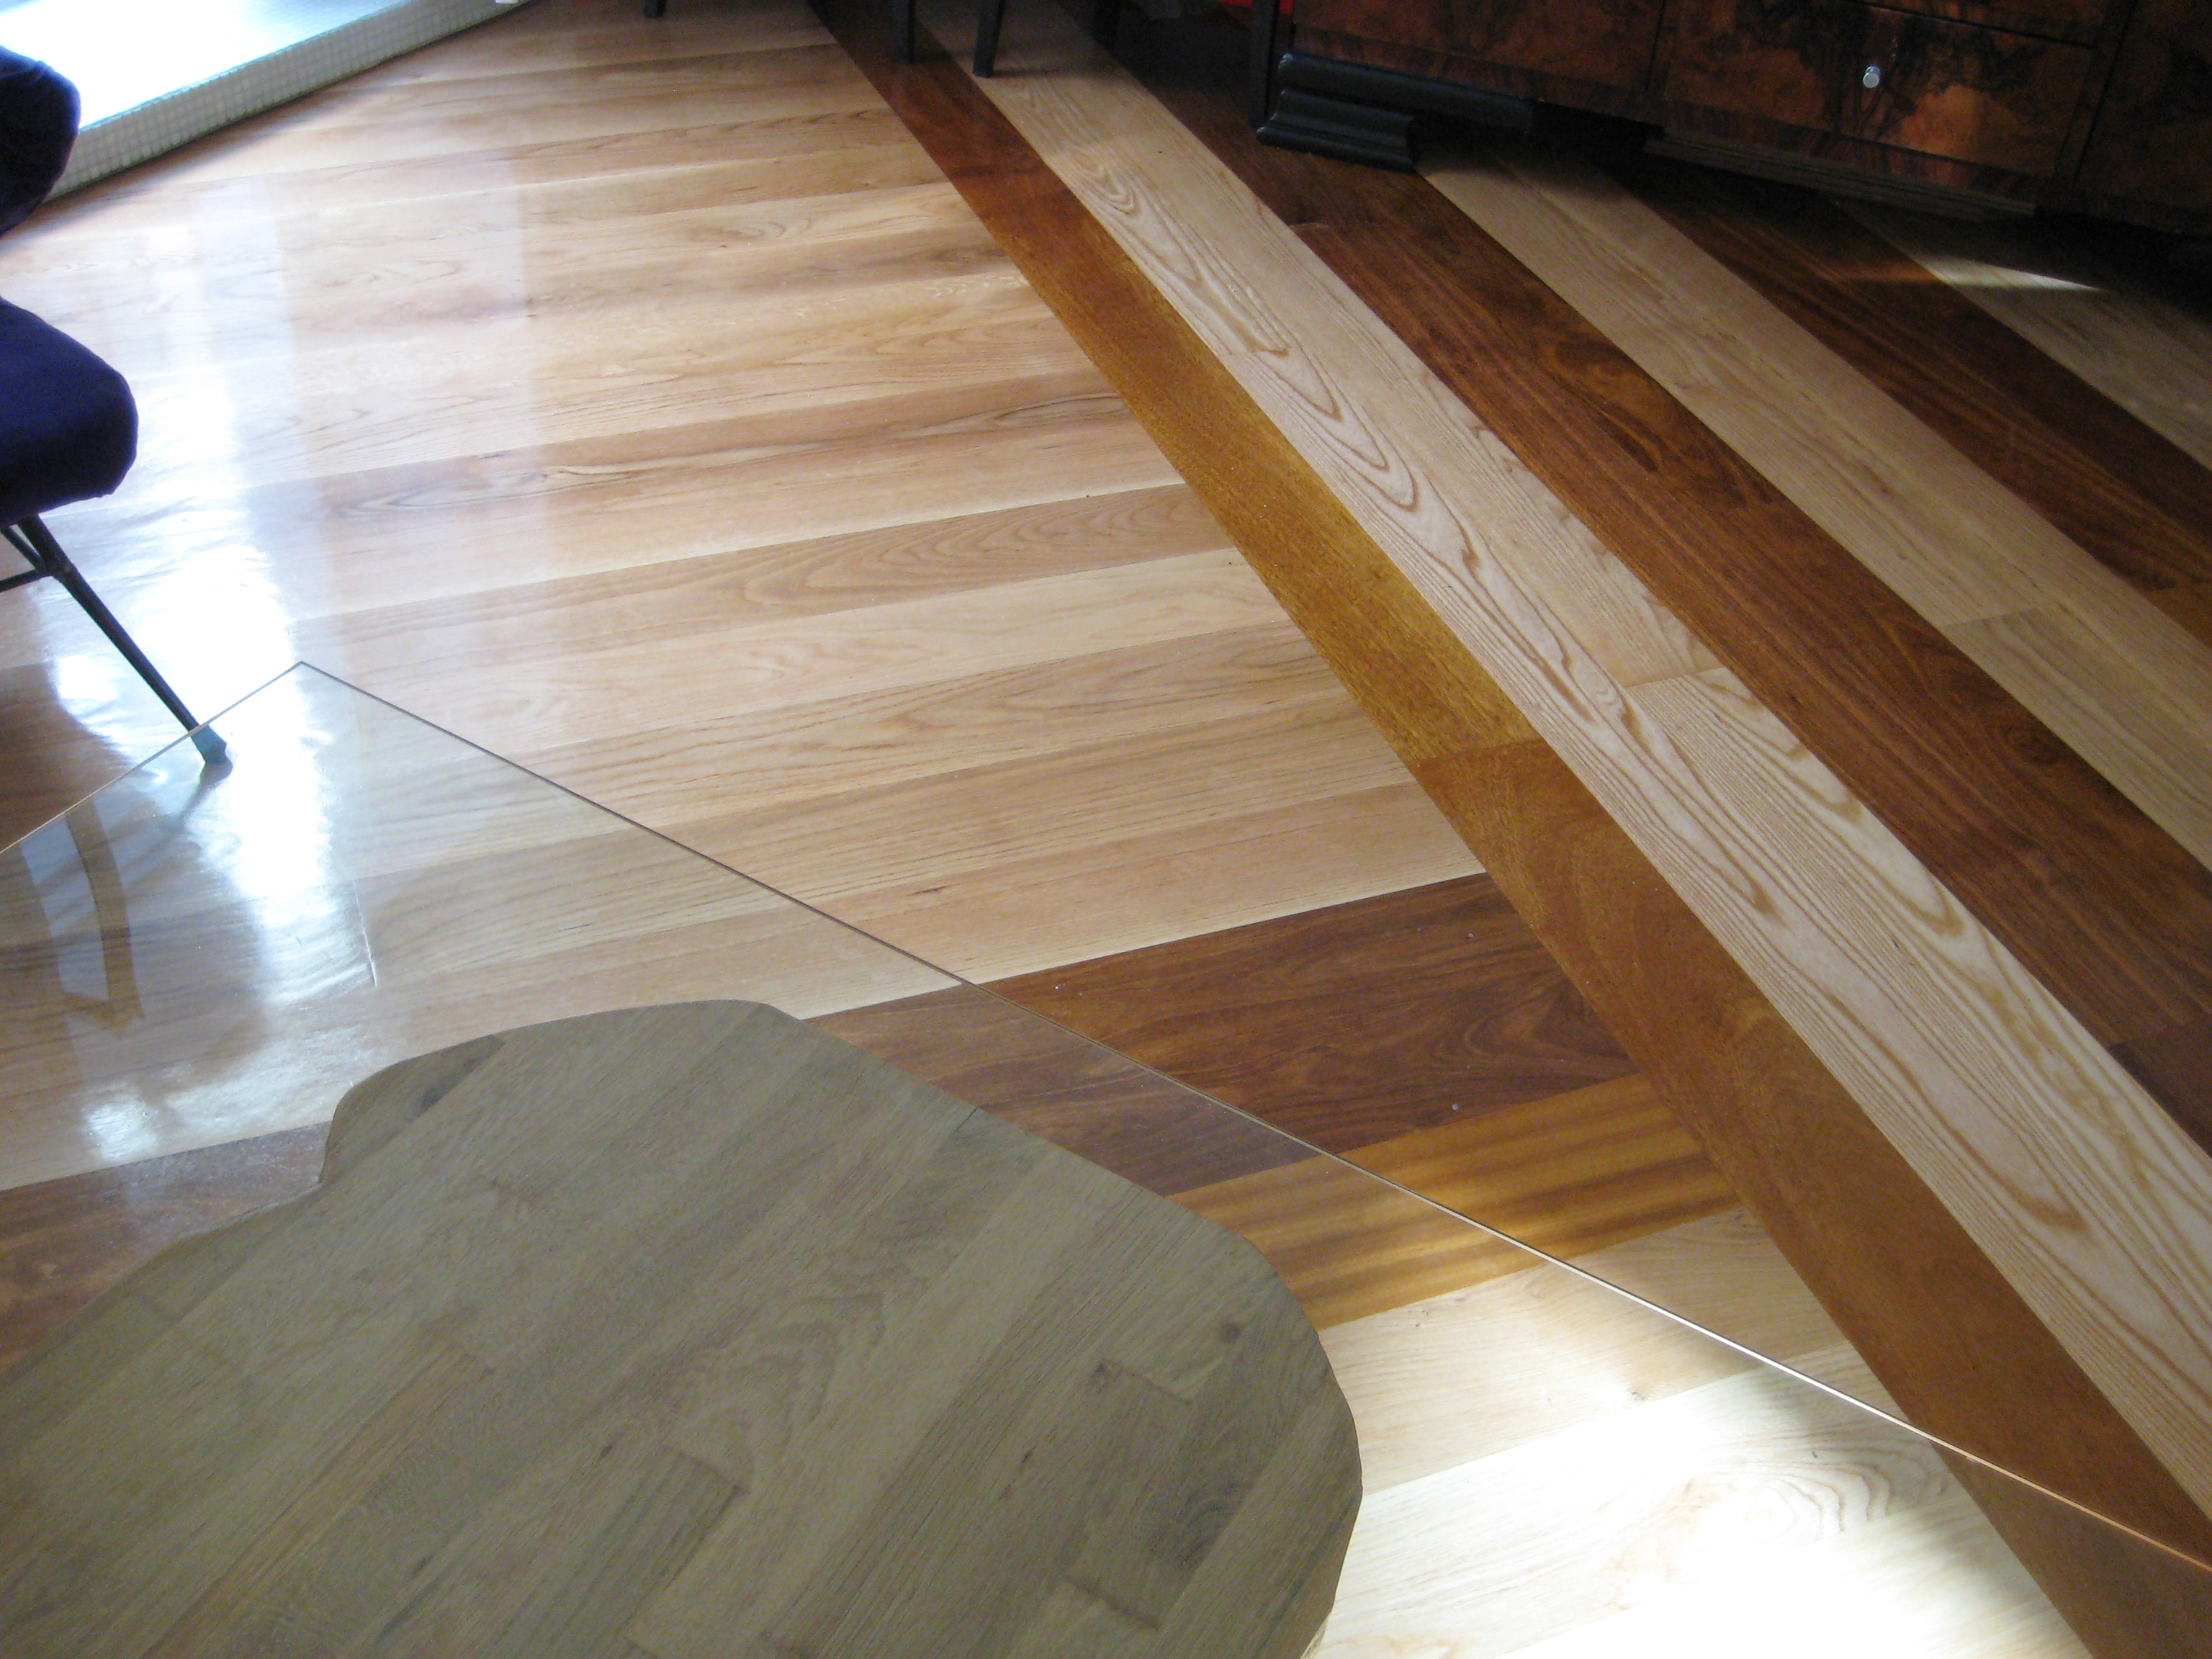 Wood floor detail